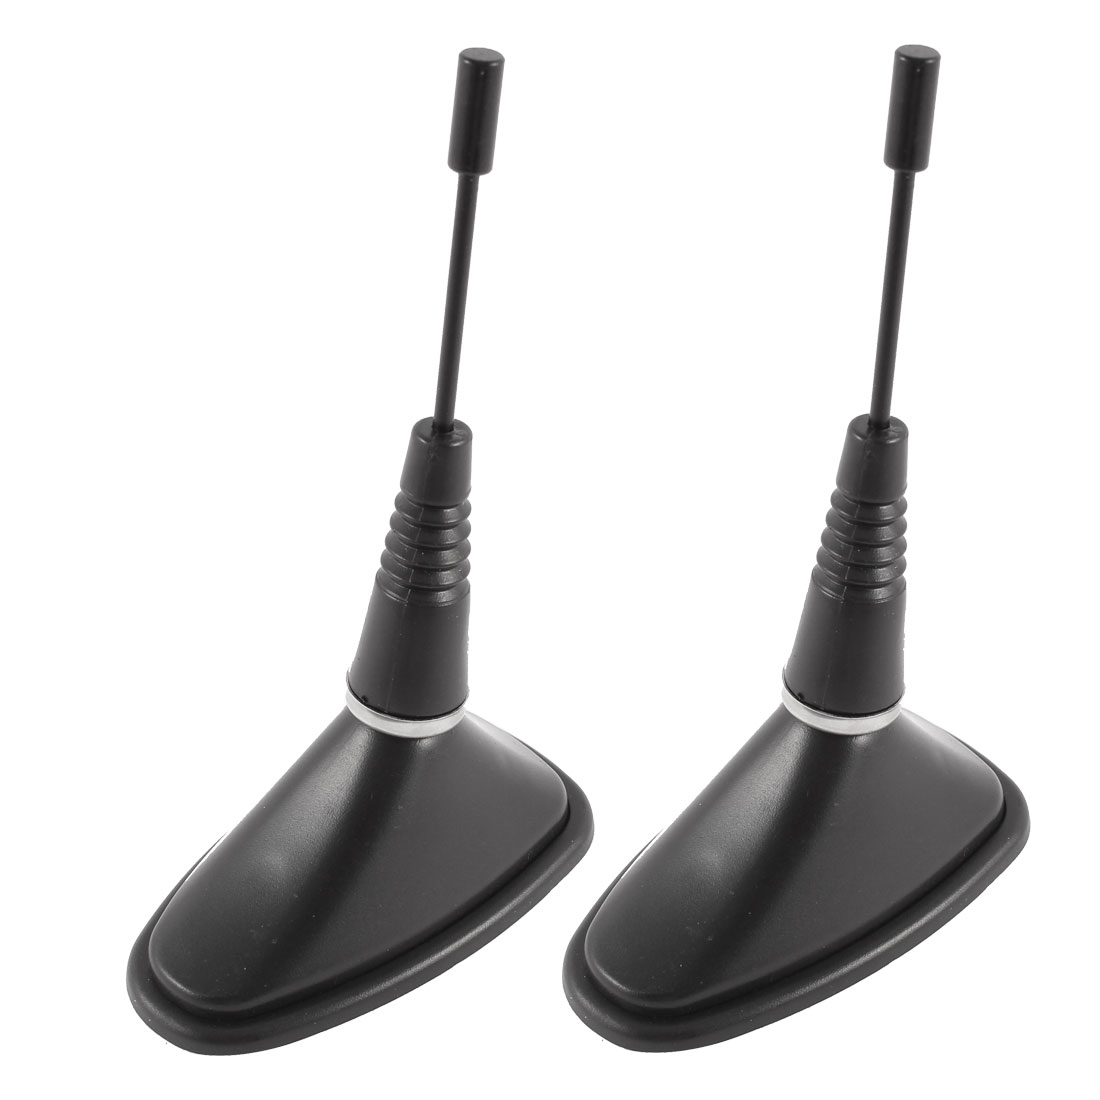 2 Pcs Black Plastic Top Mount Roof Dummy Antenna Aerial for Car Auto